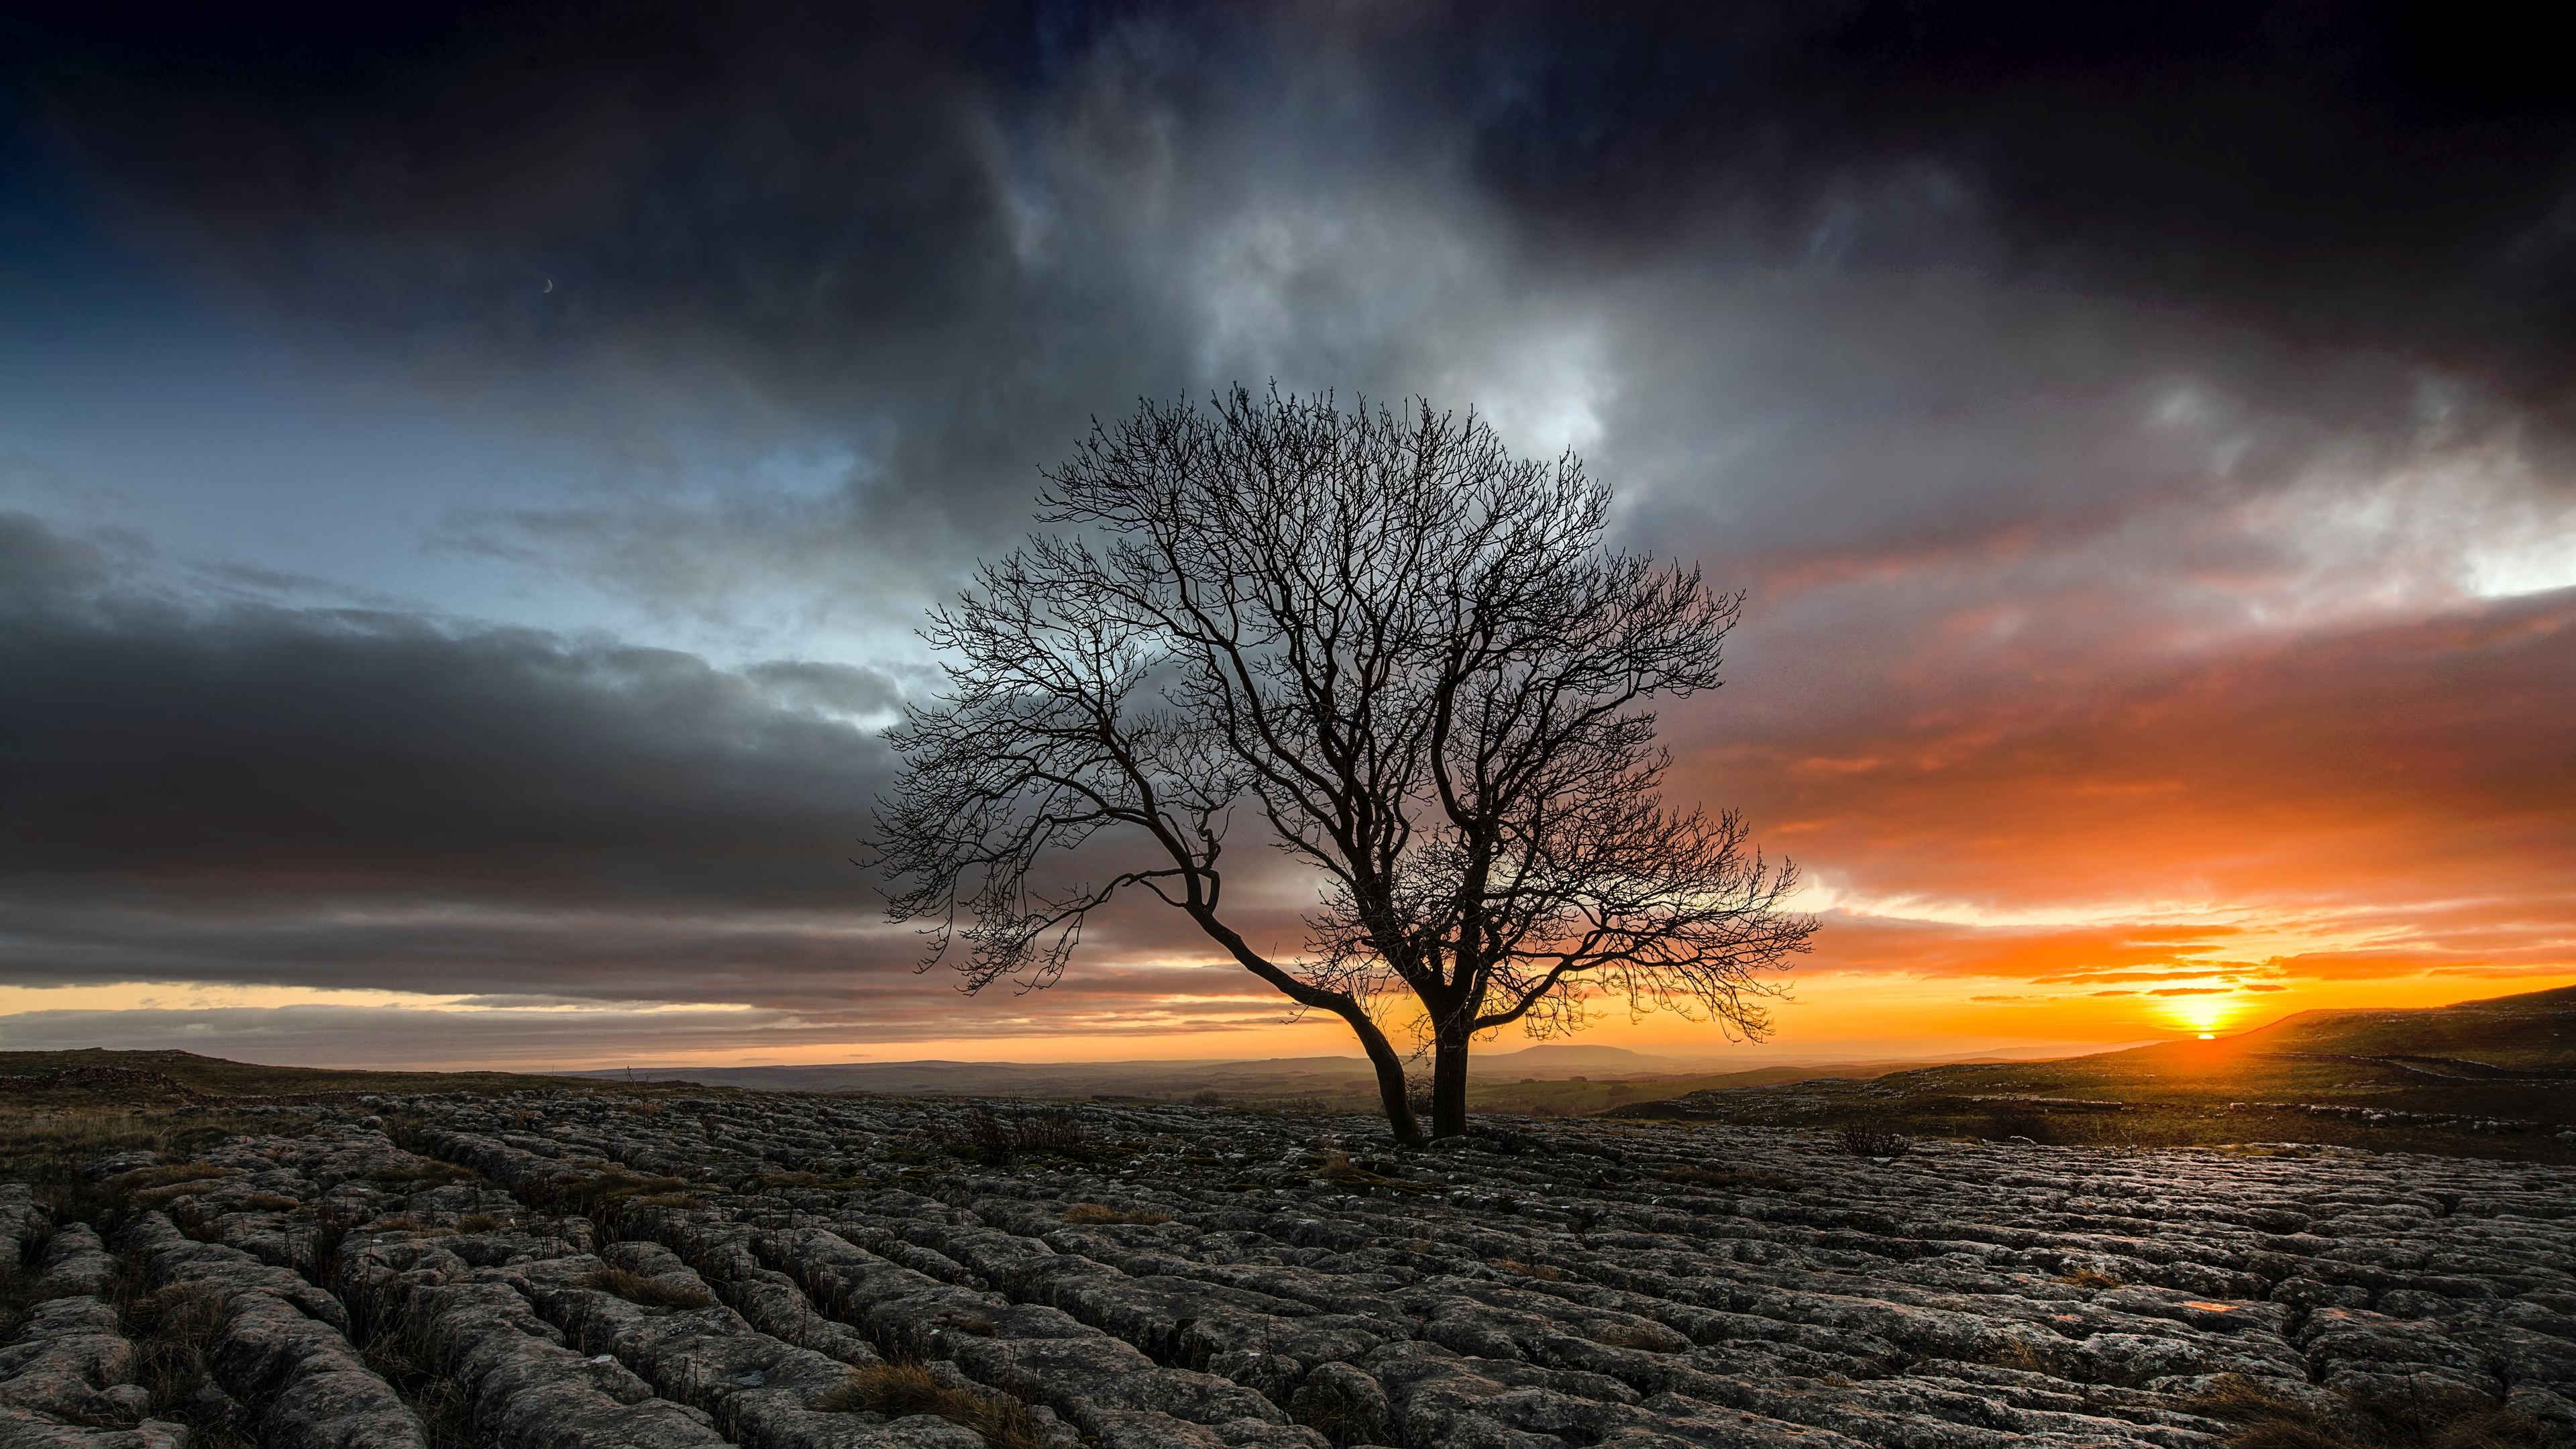 lonely tree in drought field sunset 1540141545 - Lonely Tree In Drought Field Sunset - tree wallpapers, sunset wallpapers, nature wallpapers, hd-wallpapers, field wallpapers, drought wallpapers, 8k wallpapers, 5k wallpapers, 4k-wallpapers